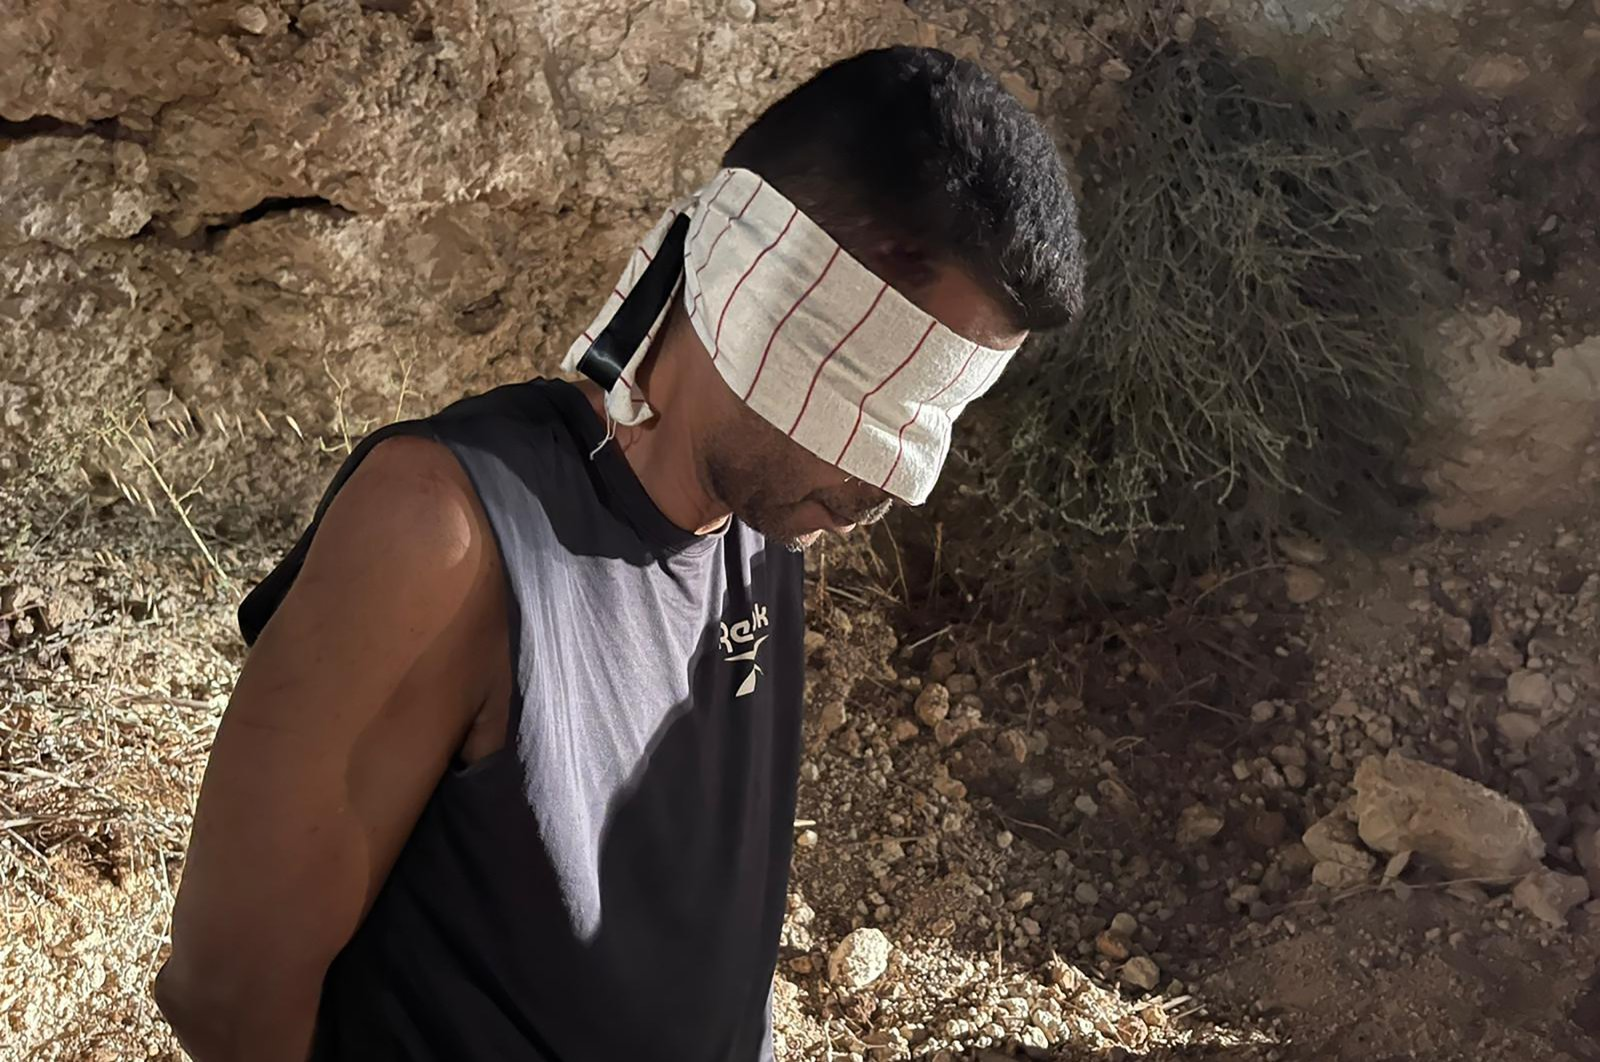 Zakaria Zubeidi, one of the six Palestinians who escaped from a high-security prison earlier this week, is blindfolded and handcuffed after being recaptured in the town of Umm al-Ghanam, northern Israel, Sept. 11, 2021. (Israeli Police via AP, File)